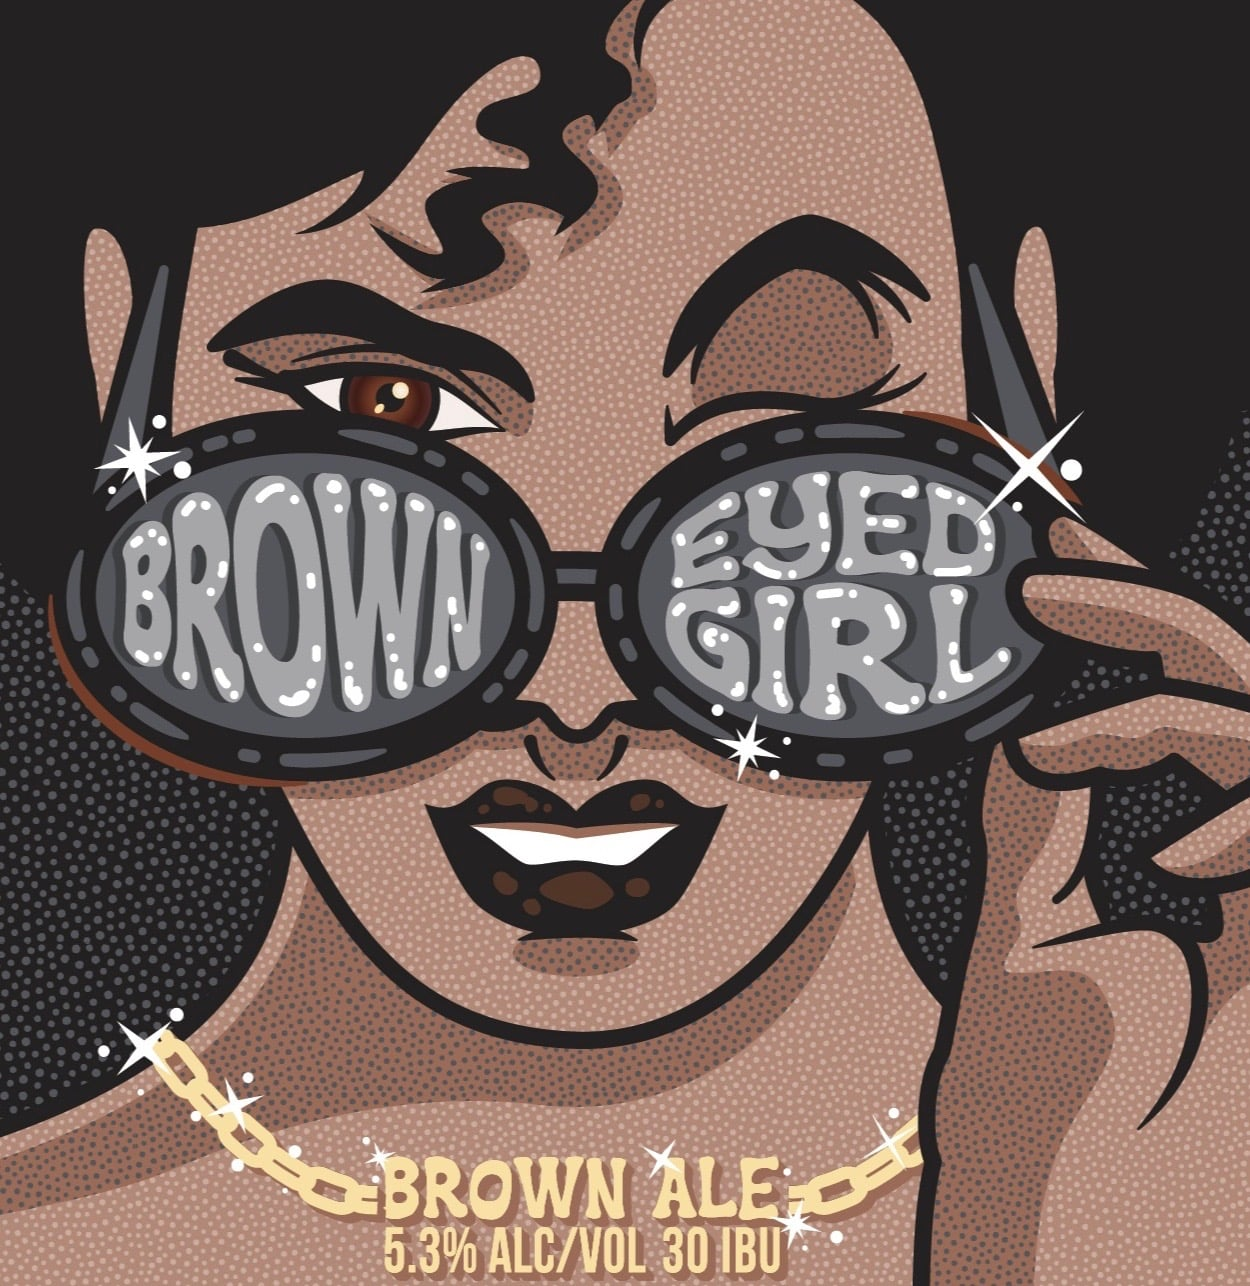 Label artwork for Brown Eyed Girl from Garage Band Brewing